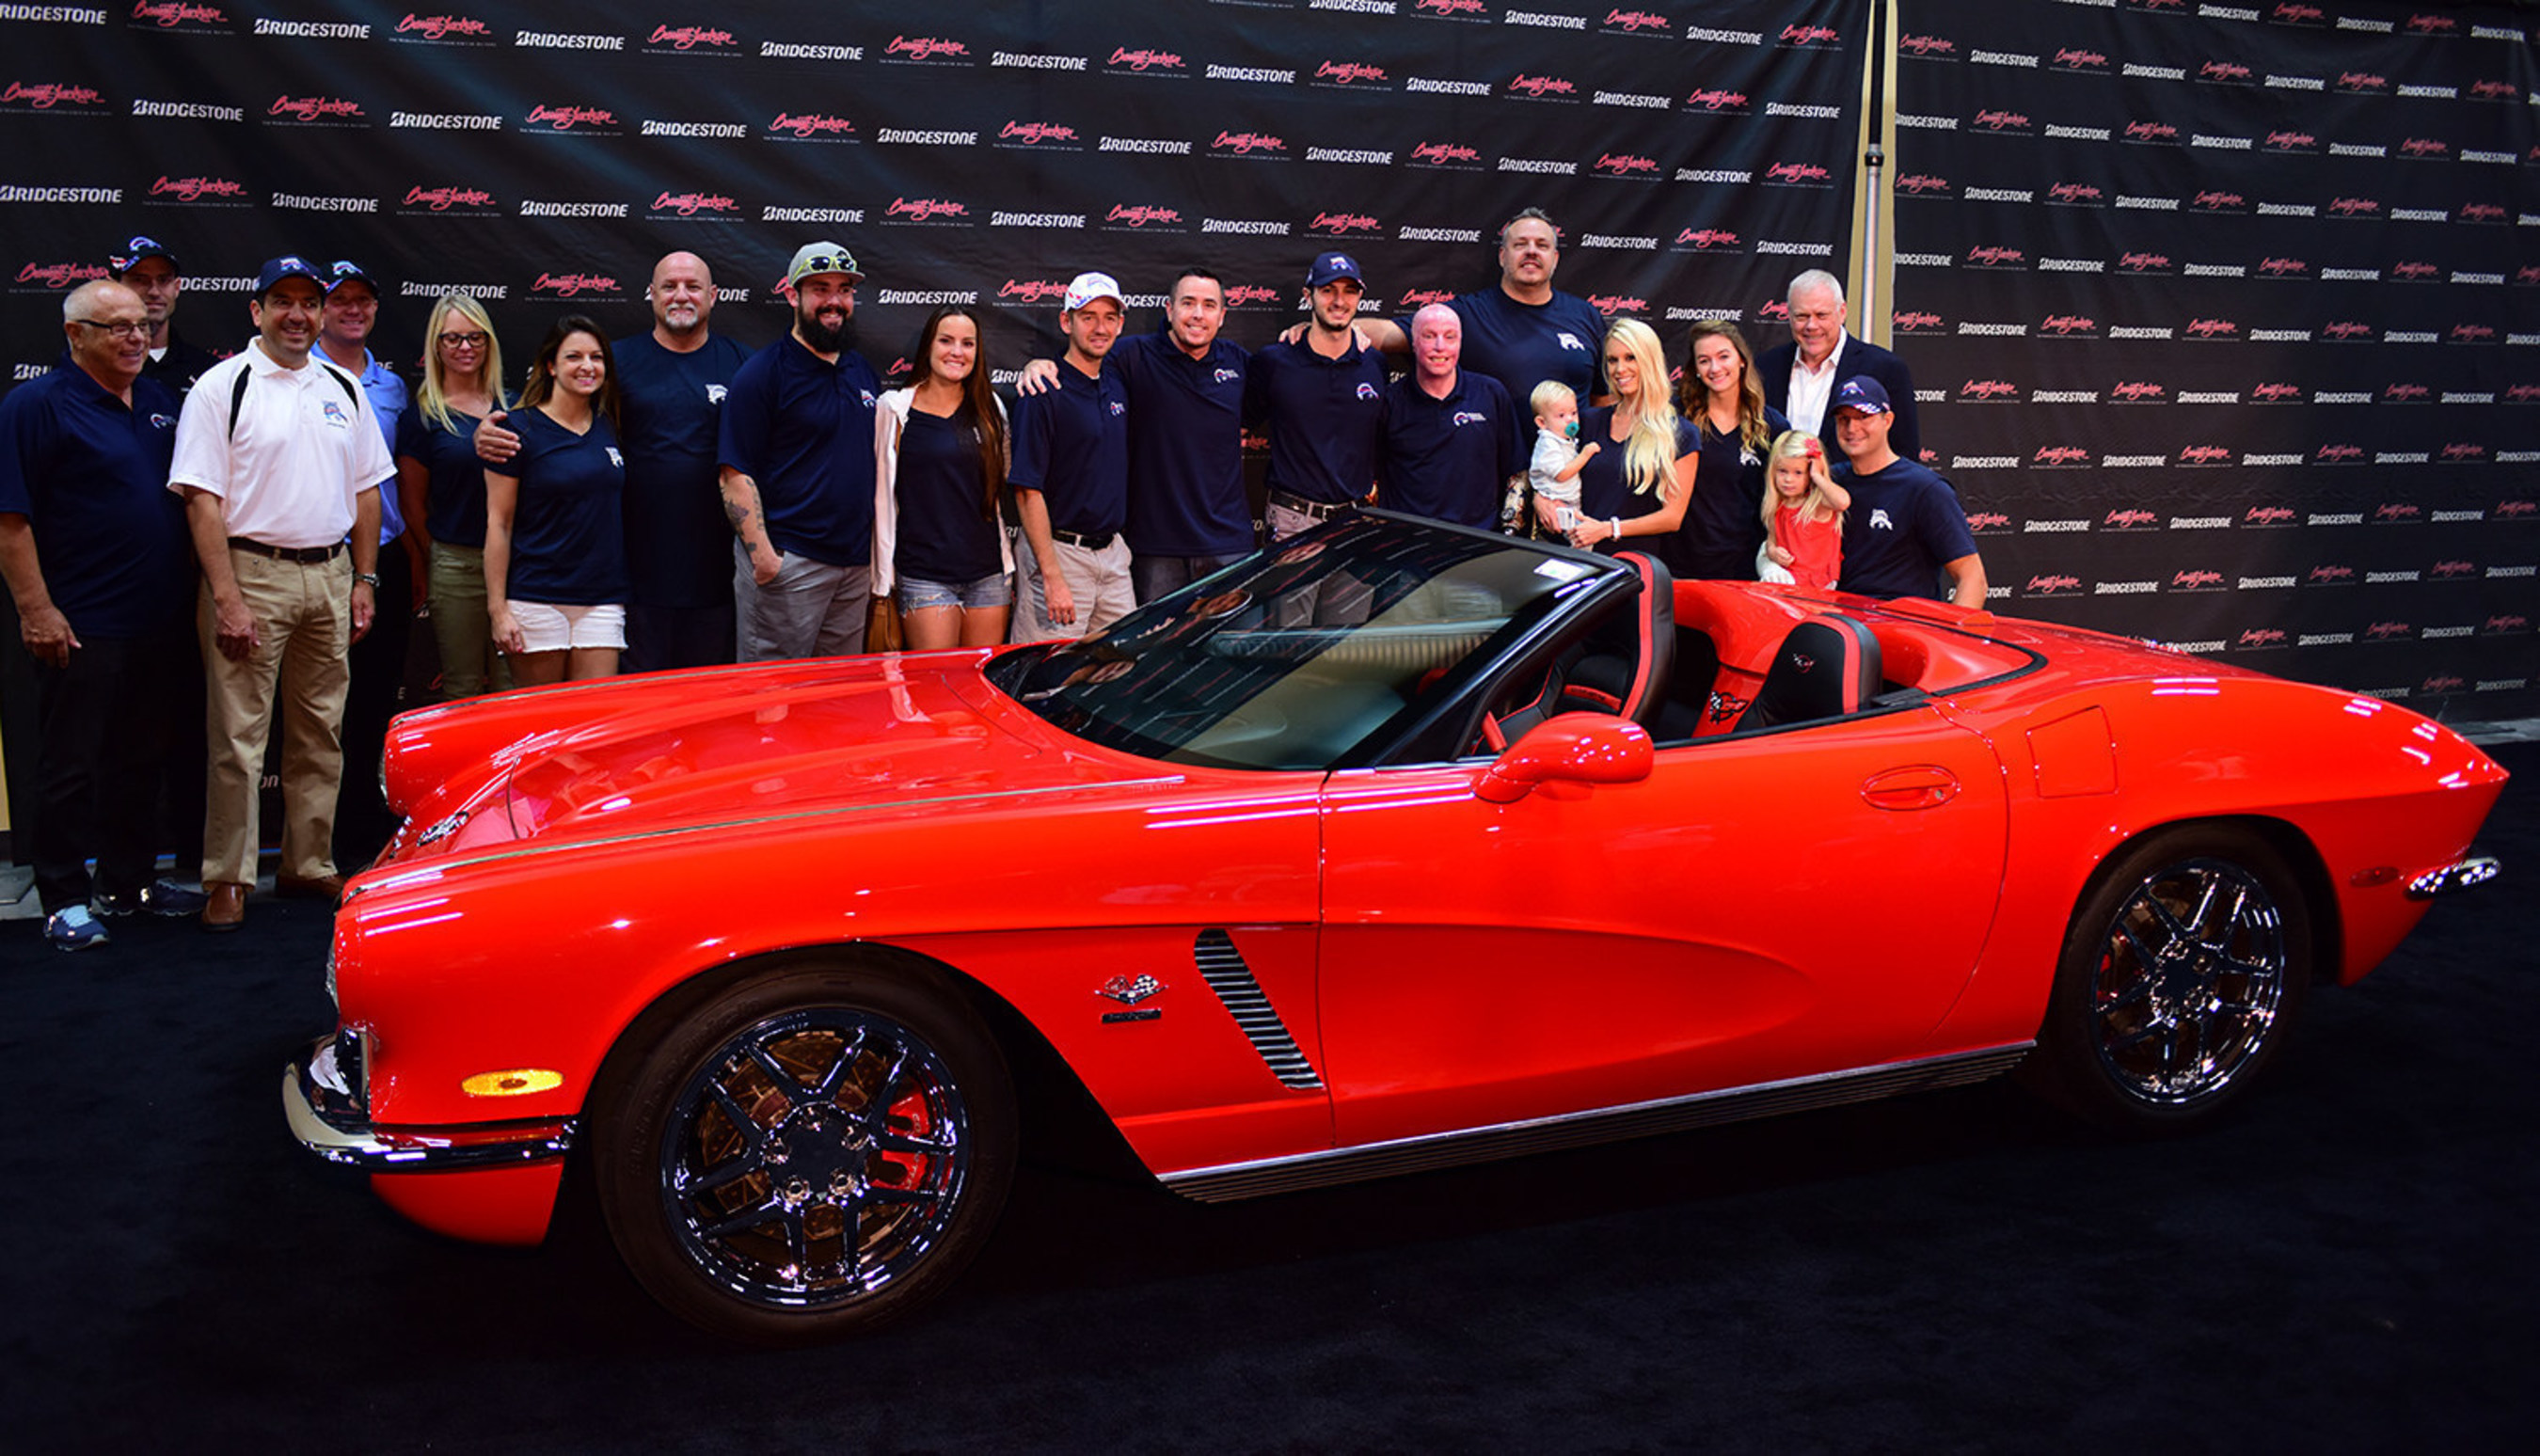 Carrington Charitable Foundation Auctions State-of-the-Art Retro Corvette to Raise $200,000 for Wounded Heroes